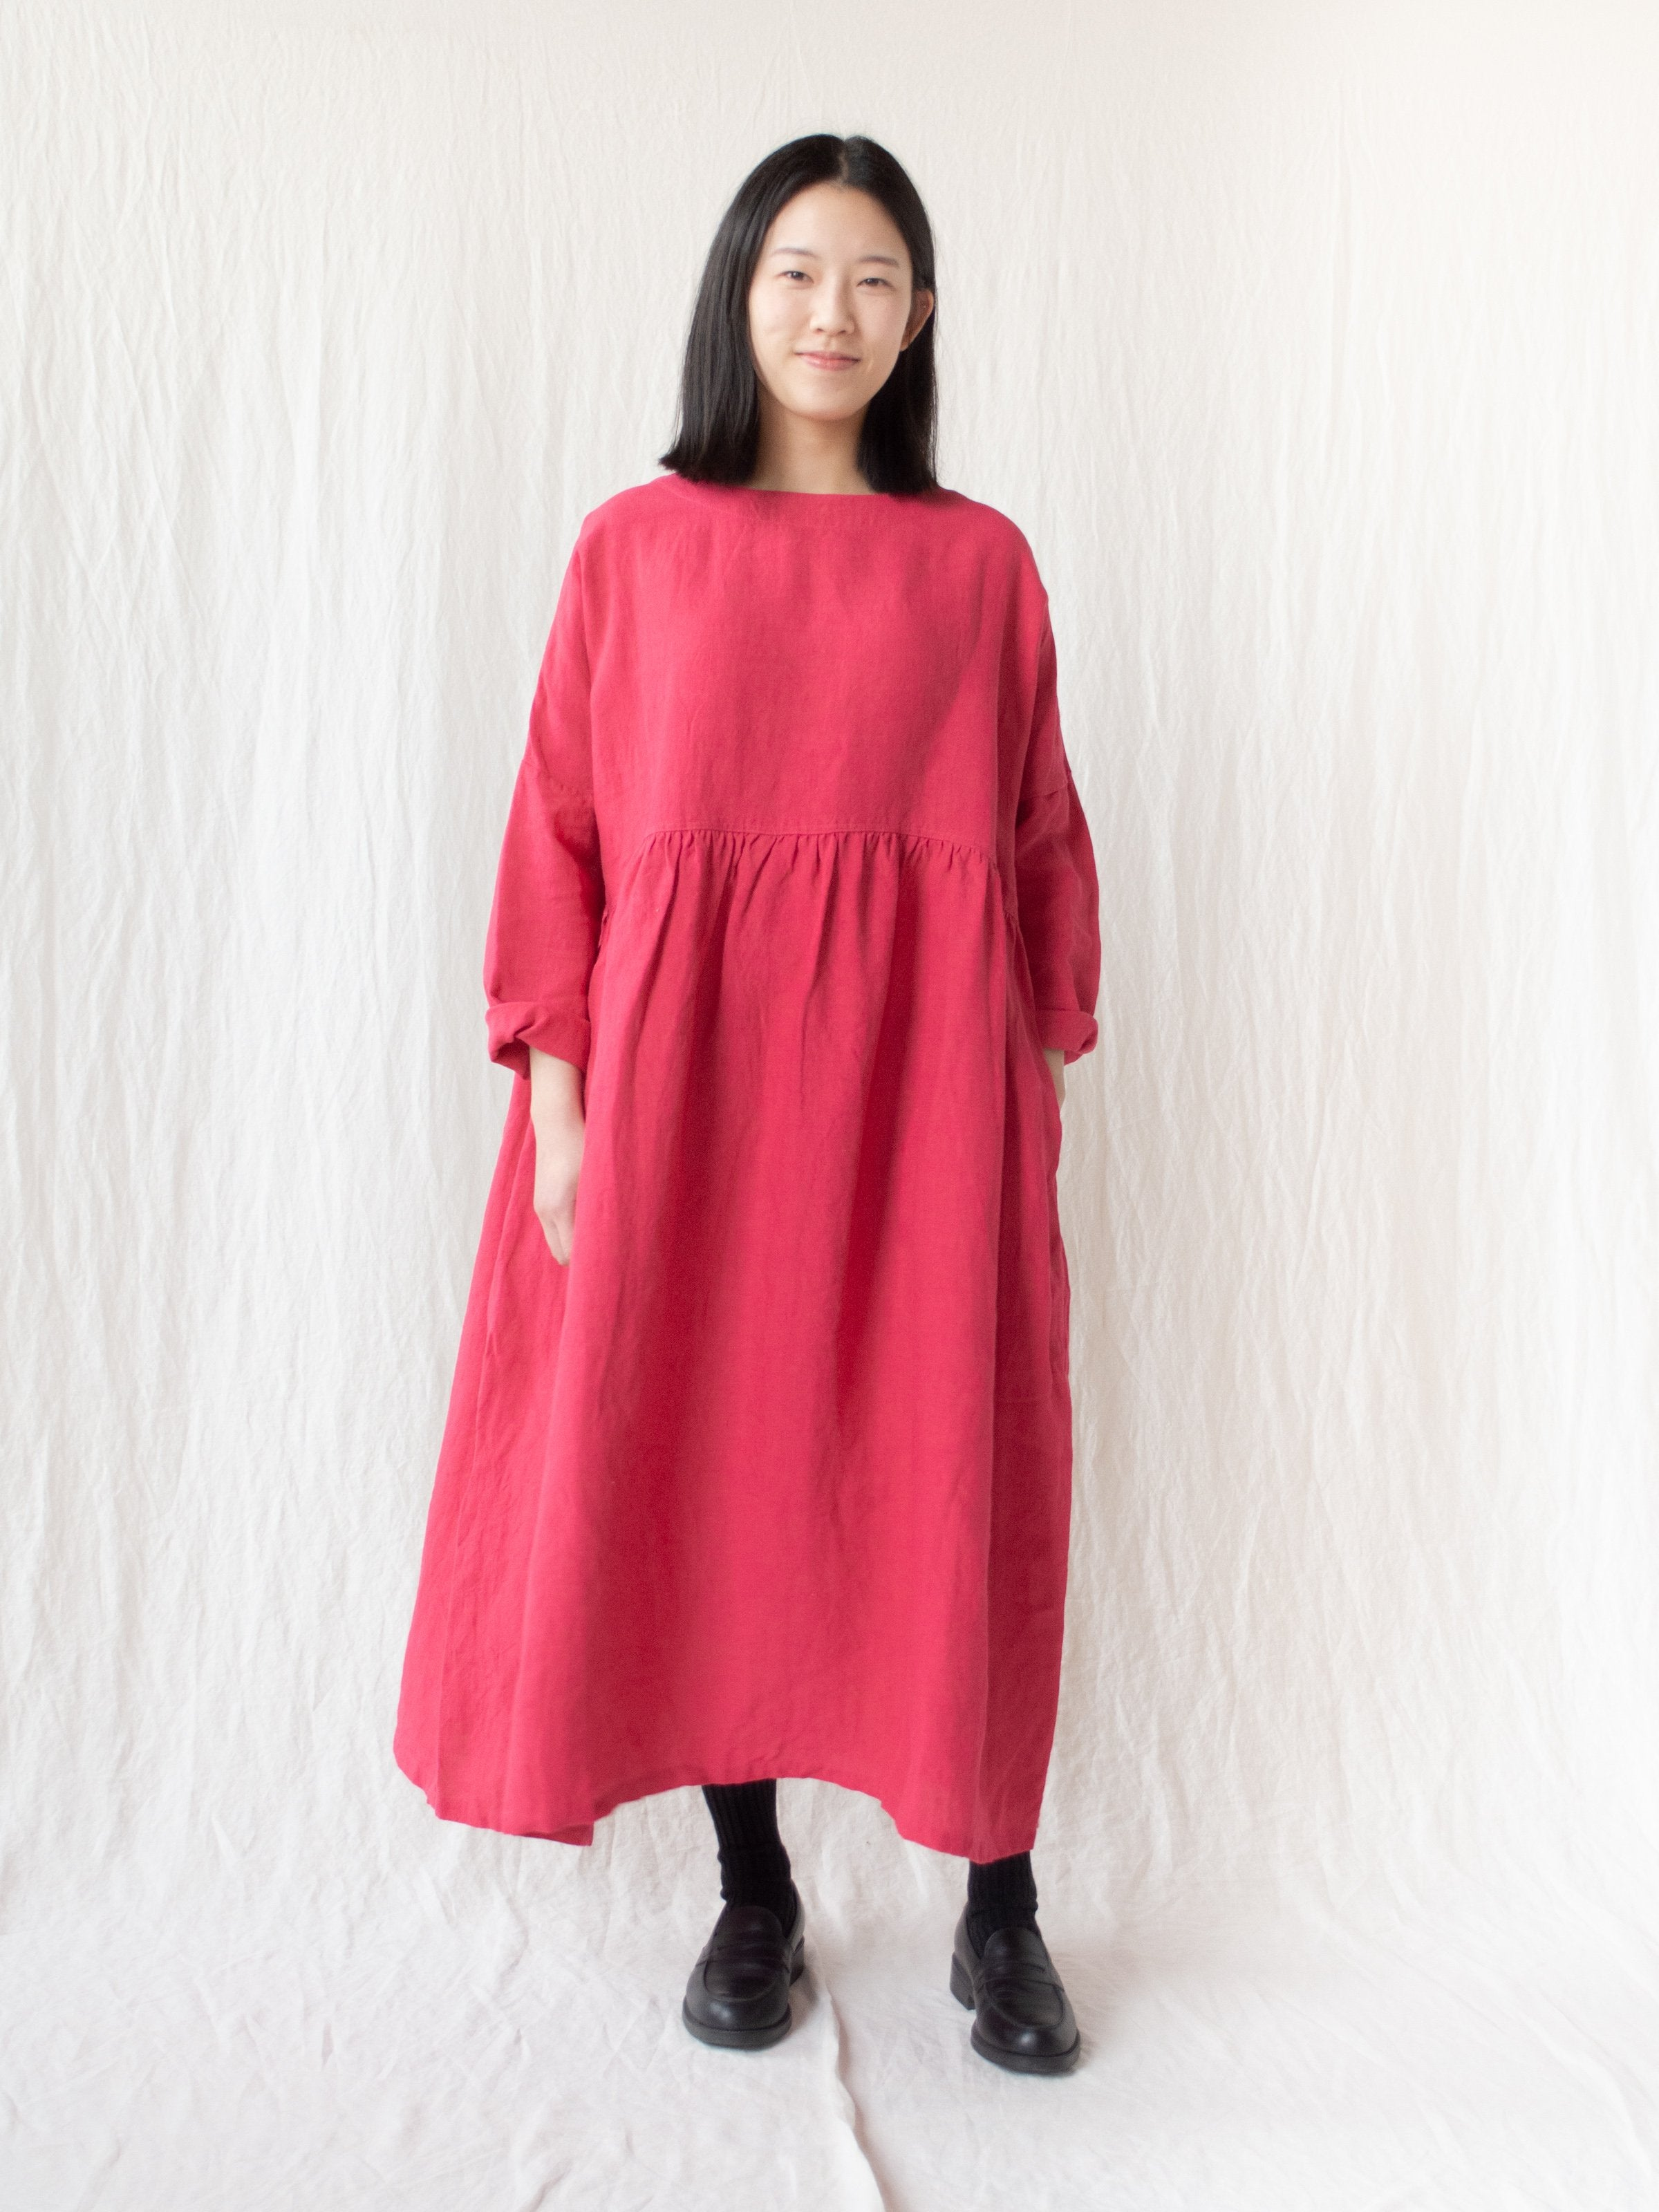 Namu Shop - Ichi Antiquites Linen Woven Dress - Pink